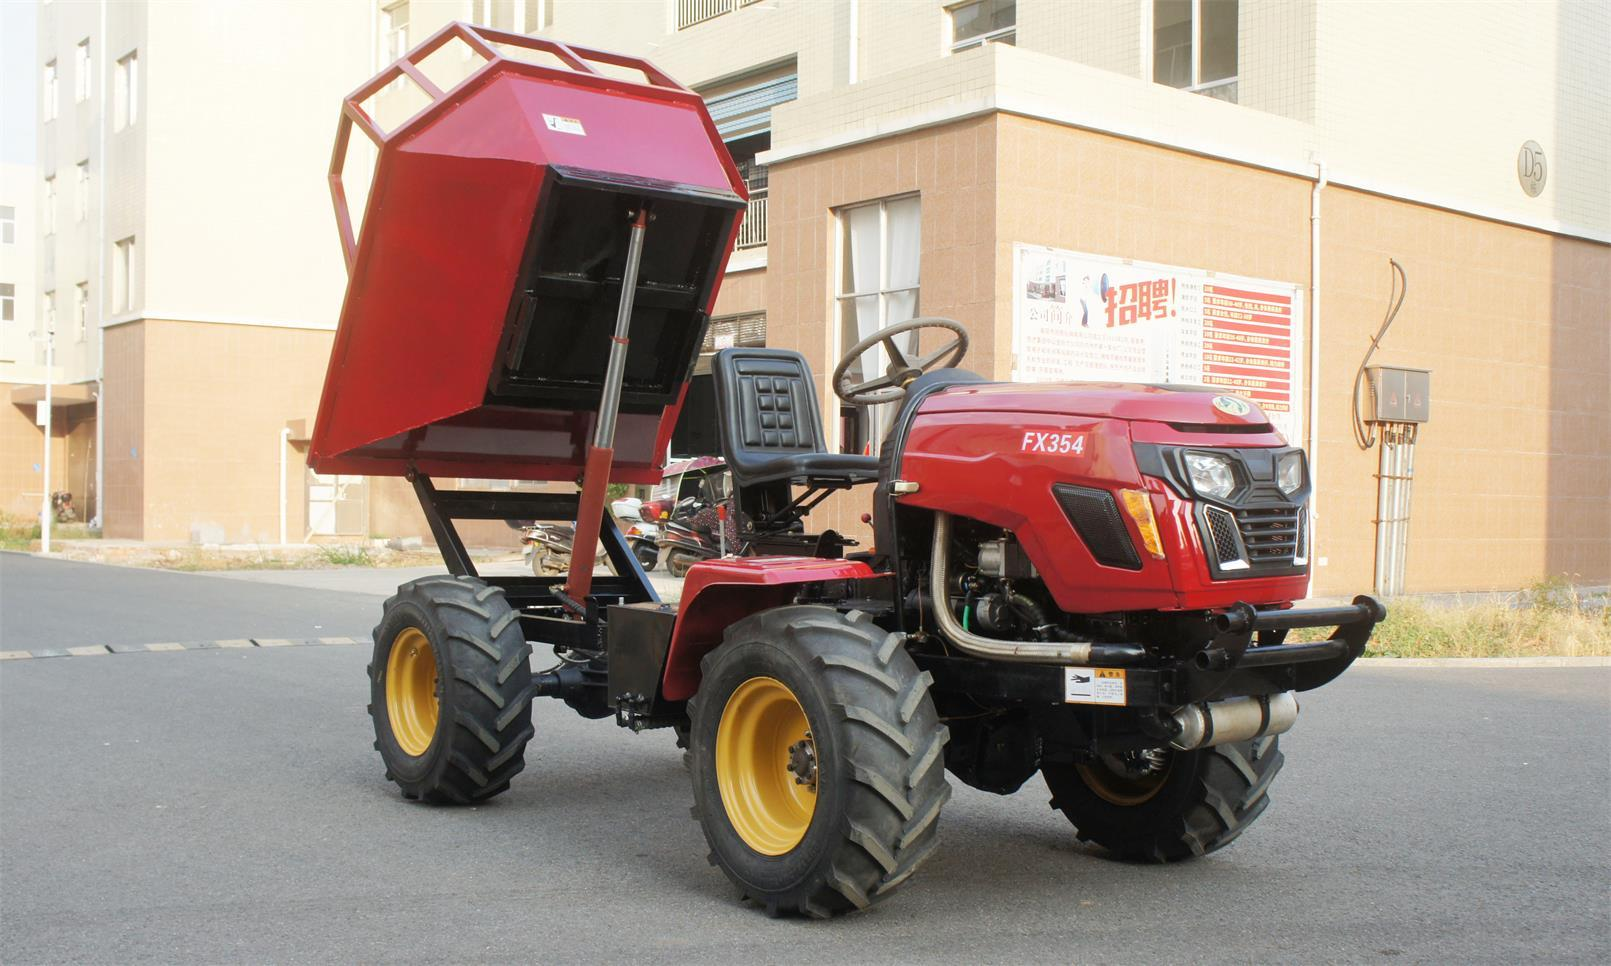 4WD Triangular Tracked transporter Tractor 13